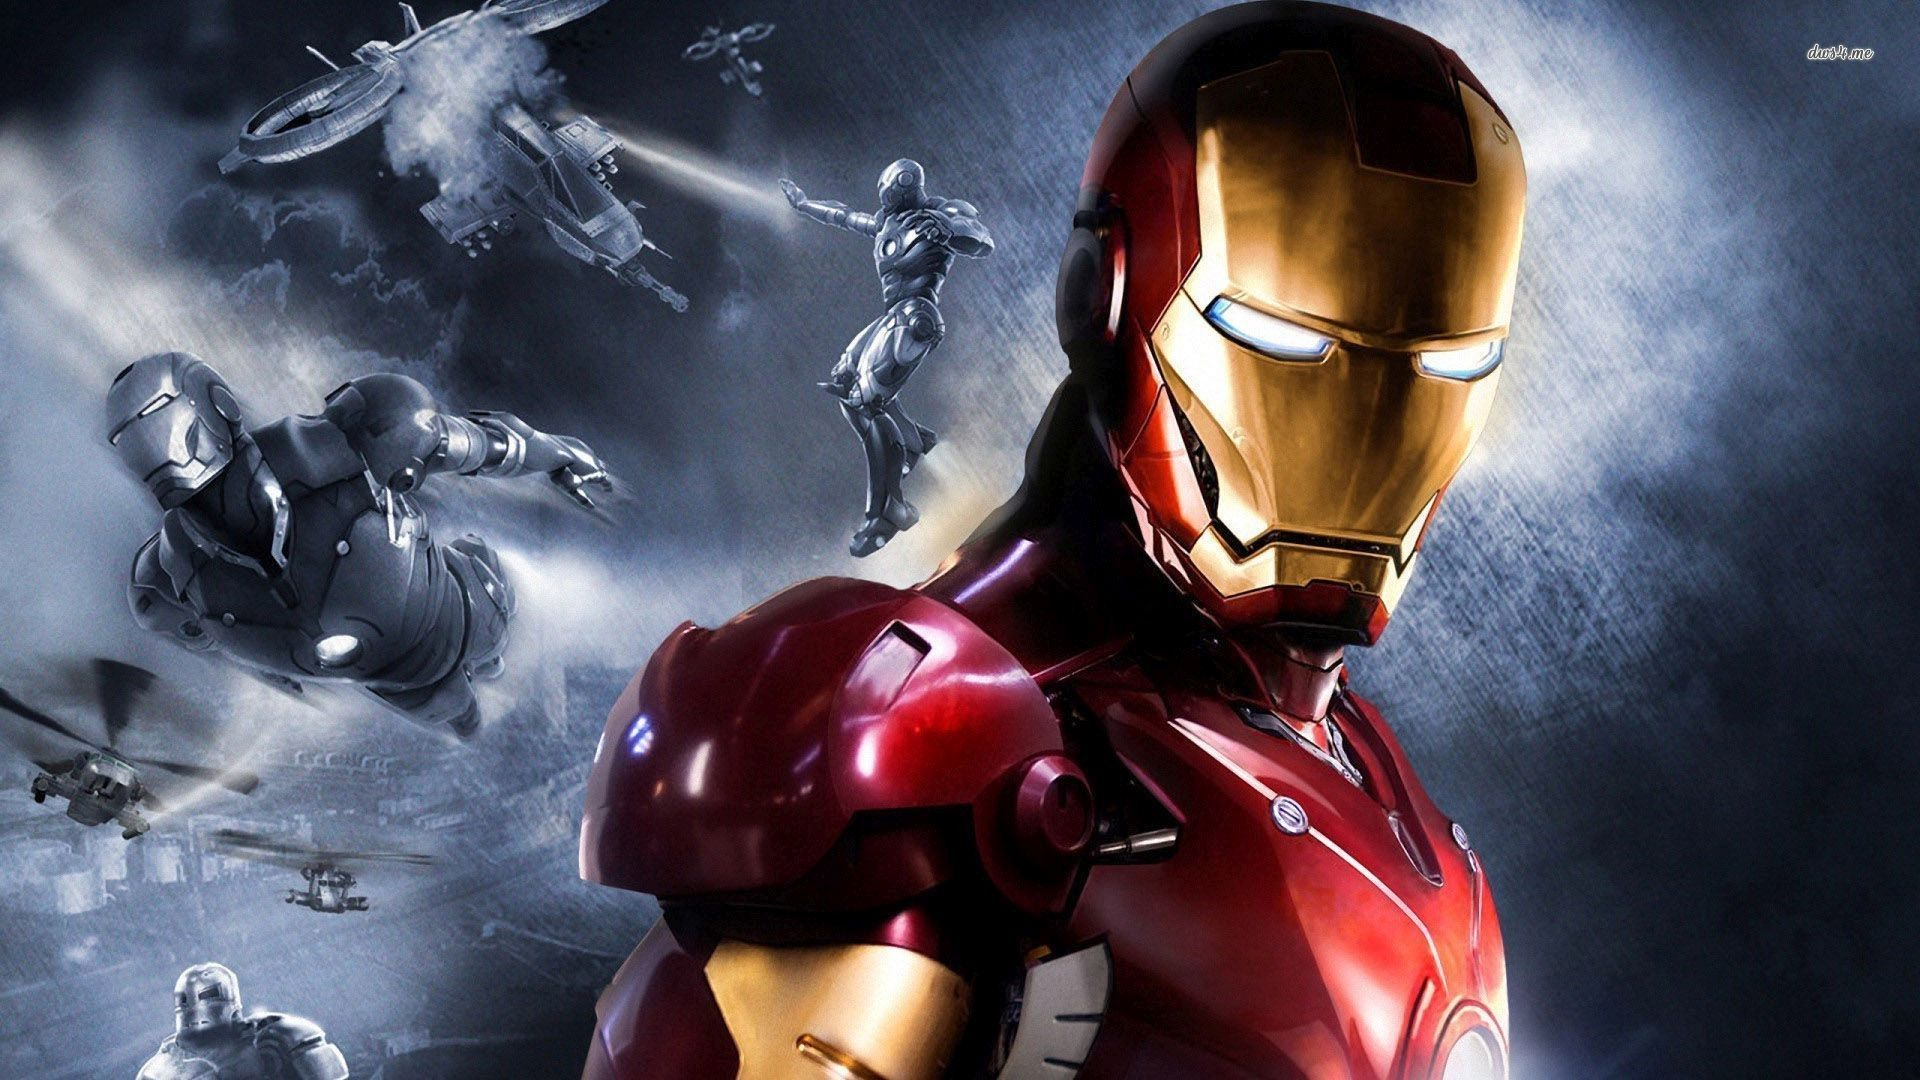 Awesome Iron Man Avengers Wallpaper Hd Download Pictures In 2020